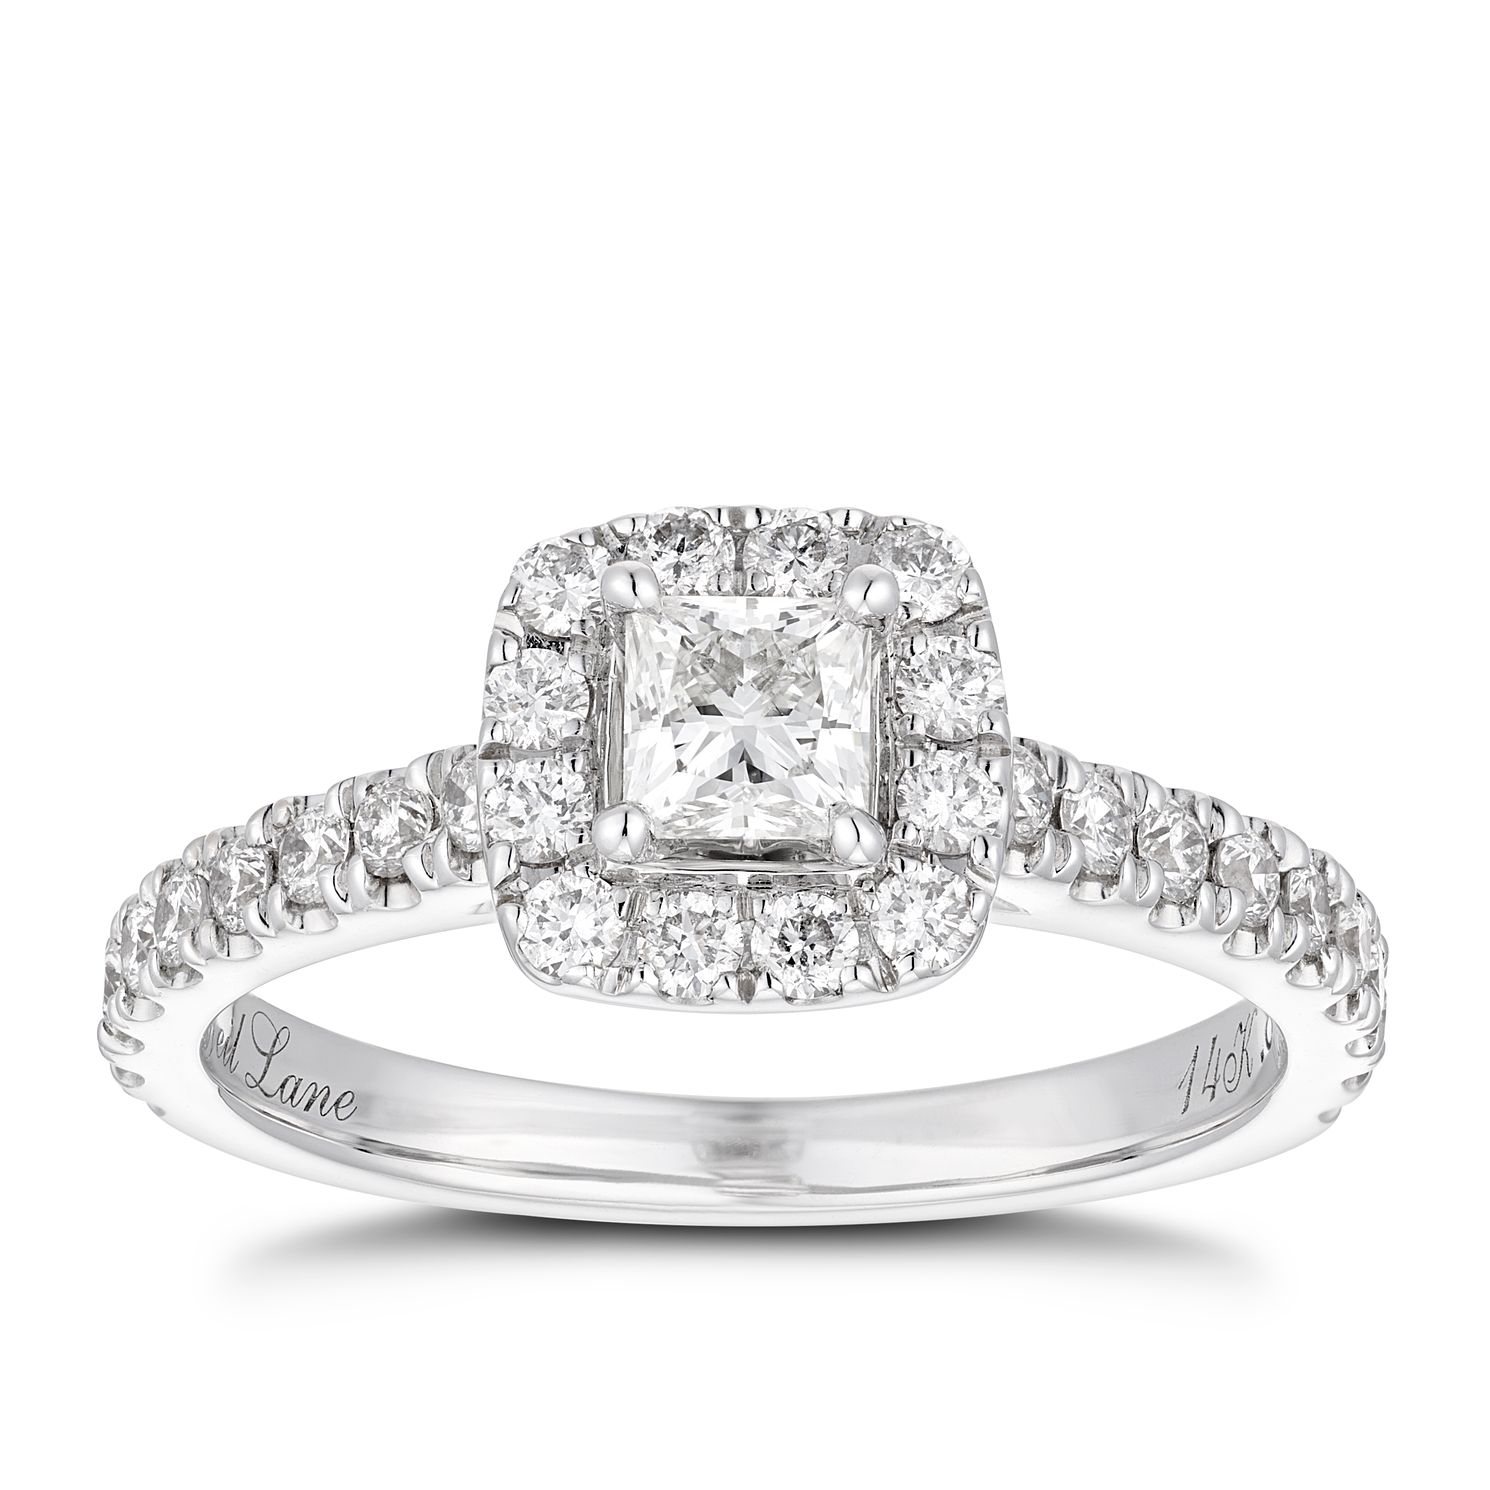 Neil Lane 14ct White Gold 0.81ct Diamond Halo Ring - Product number 1350528